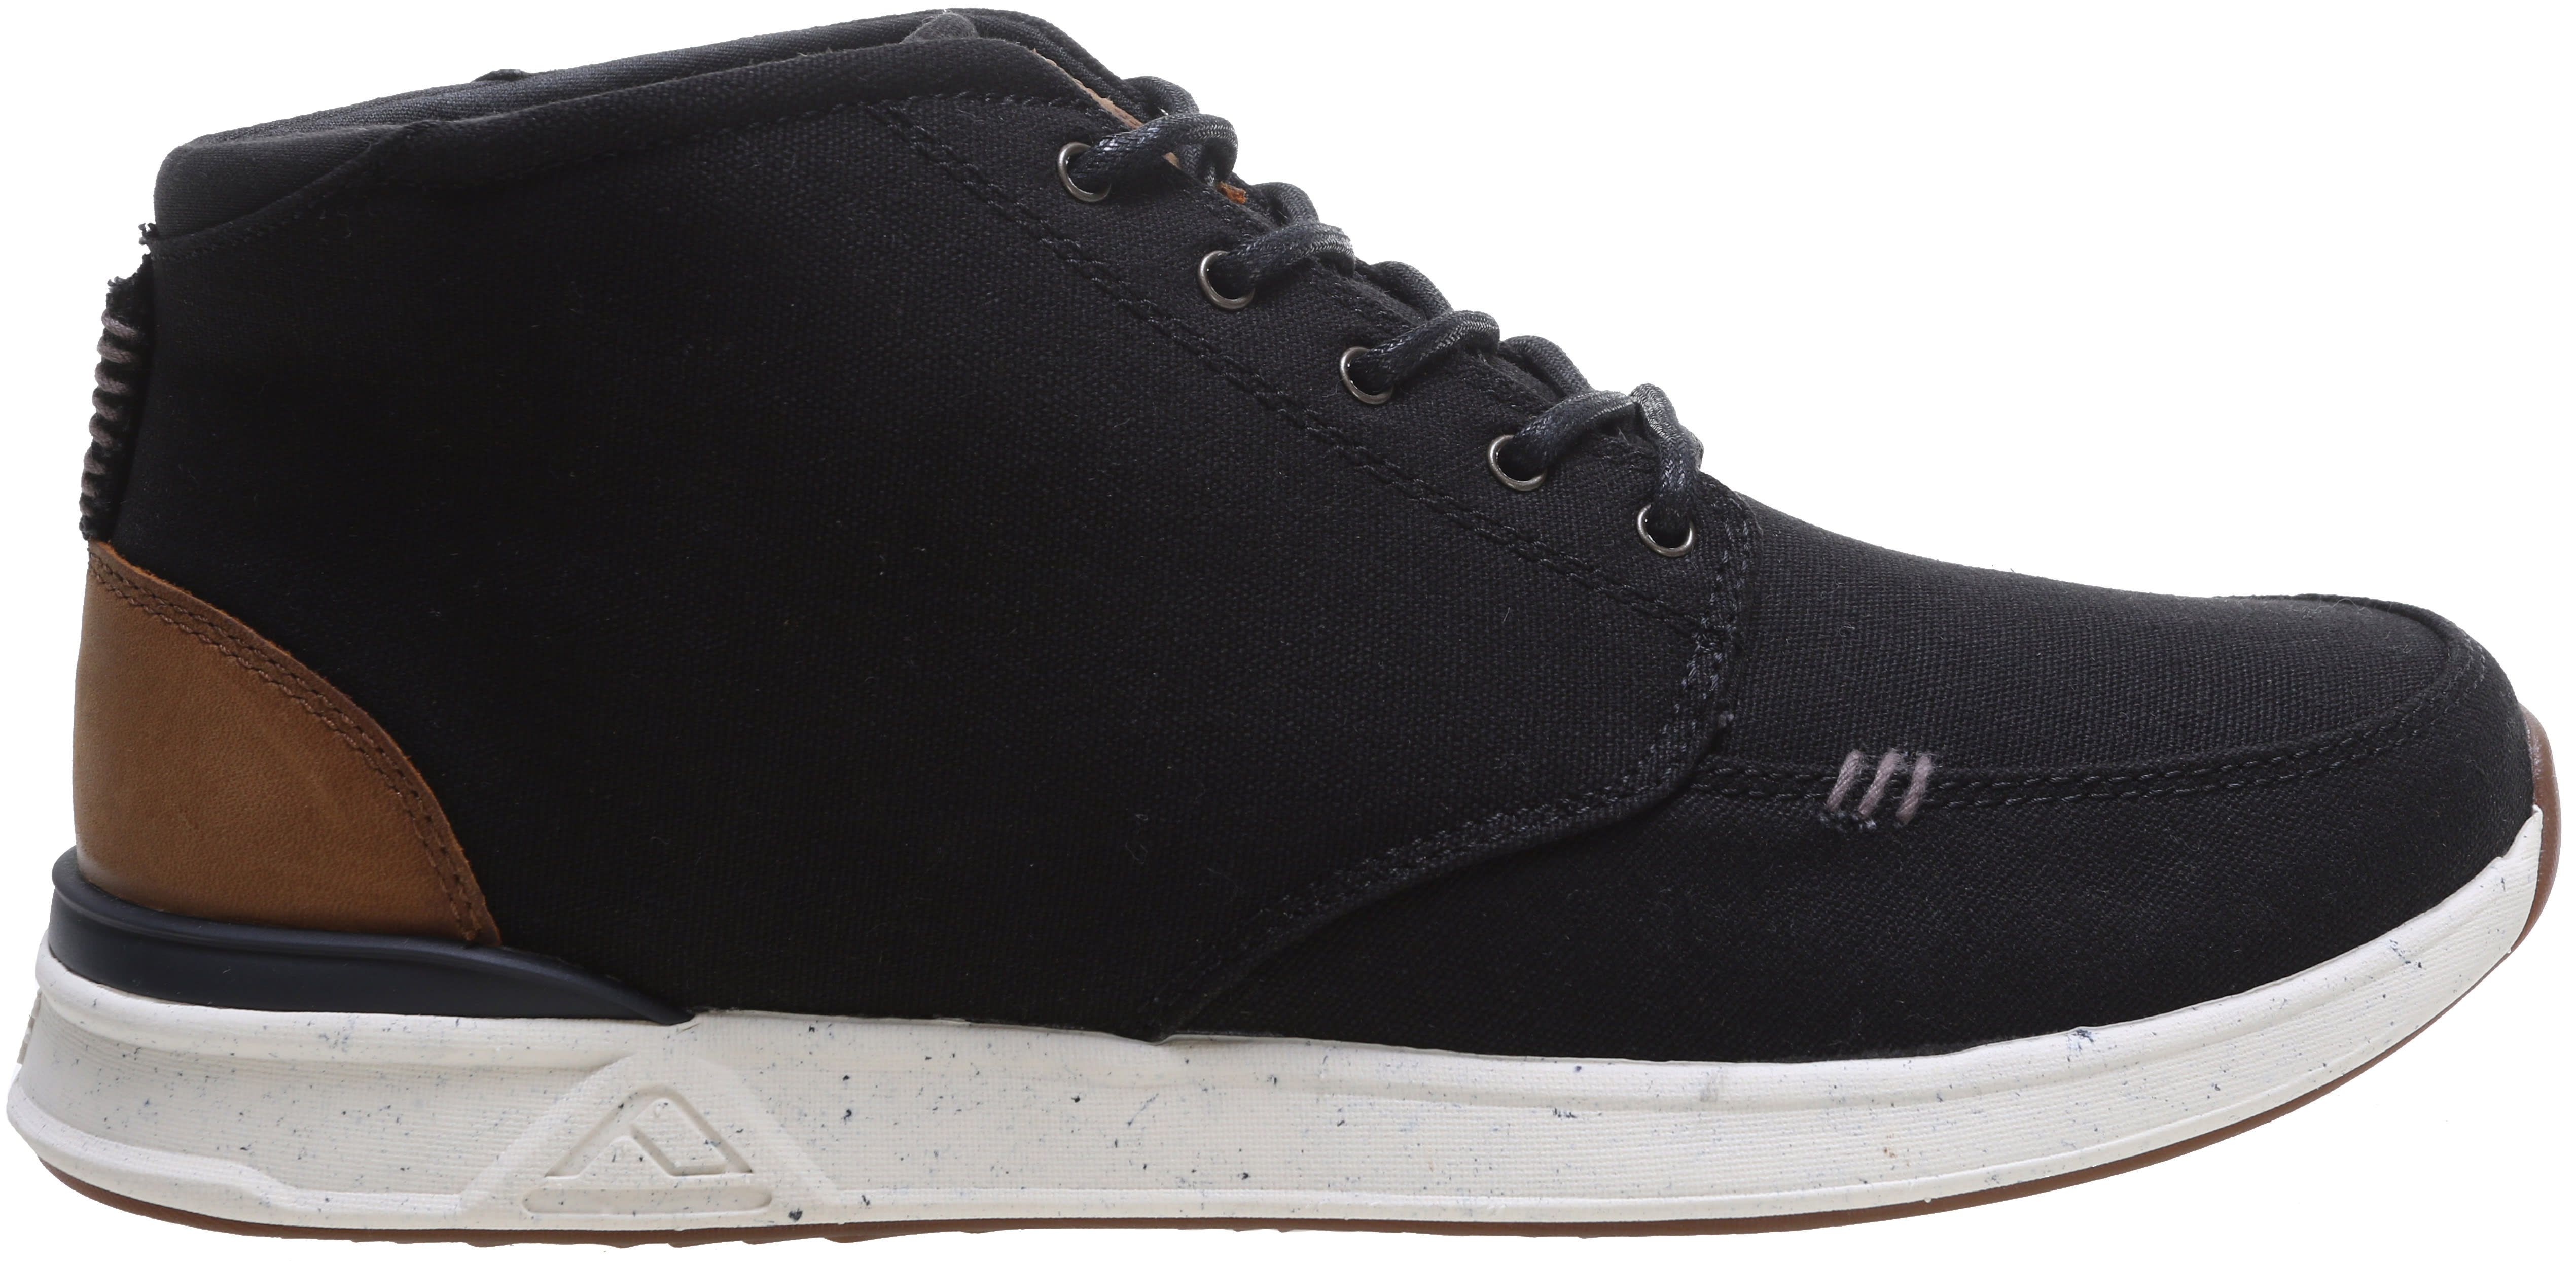 On Sale Reef Rover Mid Shoes Up To 45 Off